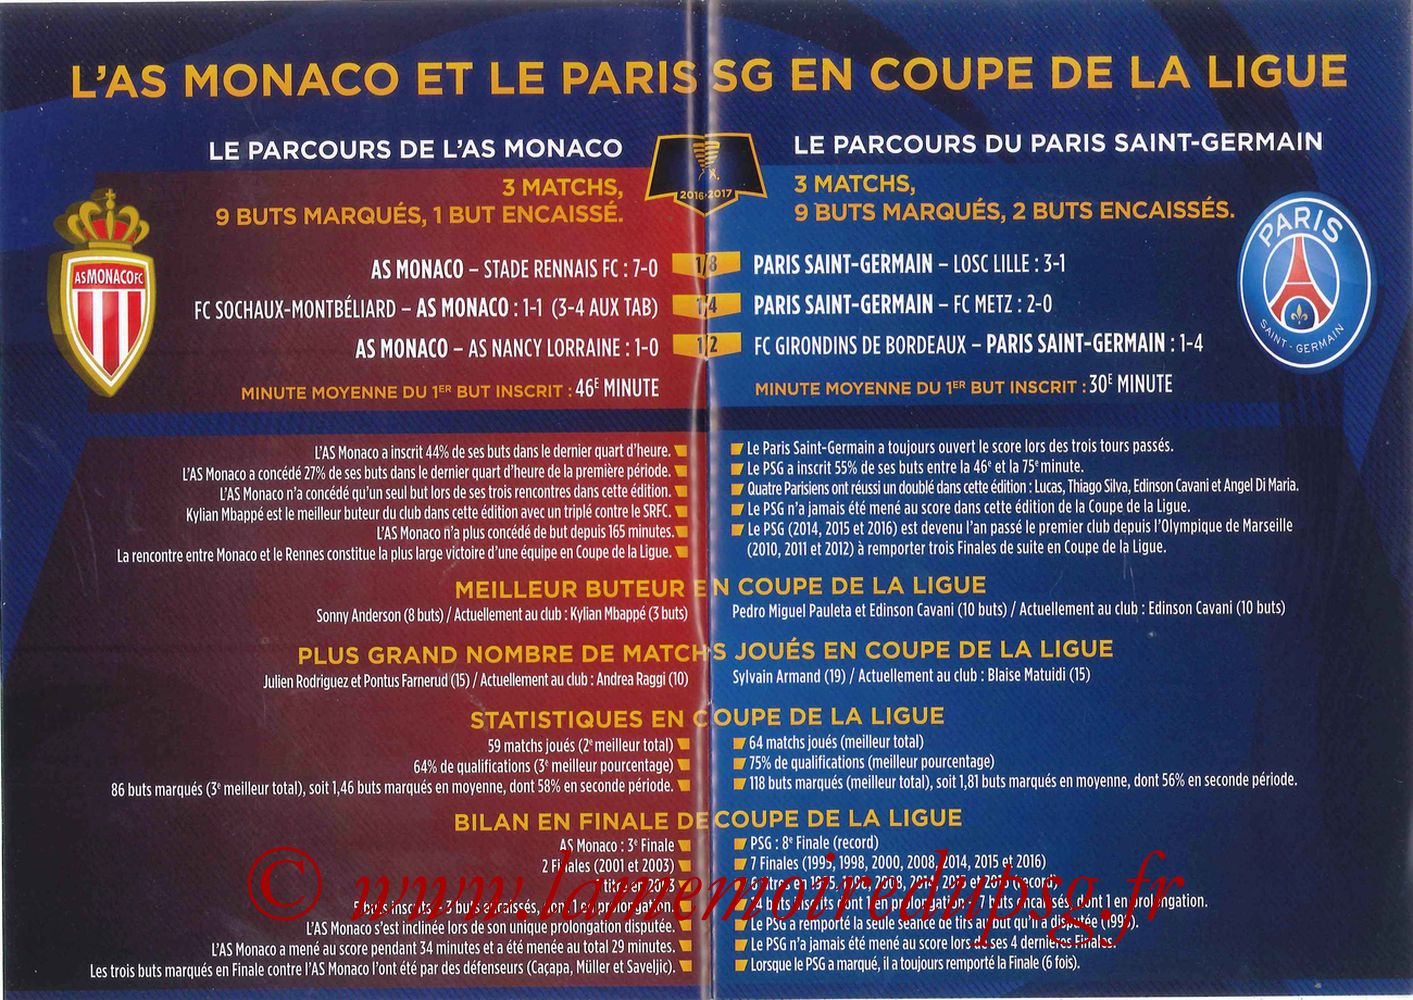 2017-04-01  Monaco-PSG (Finale CL à Lyon, Programme officiel) - Pages 04 et 05